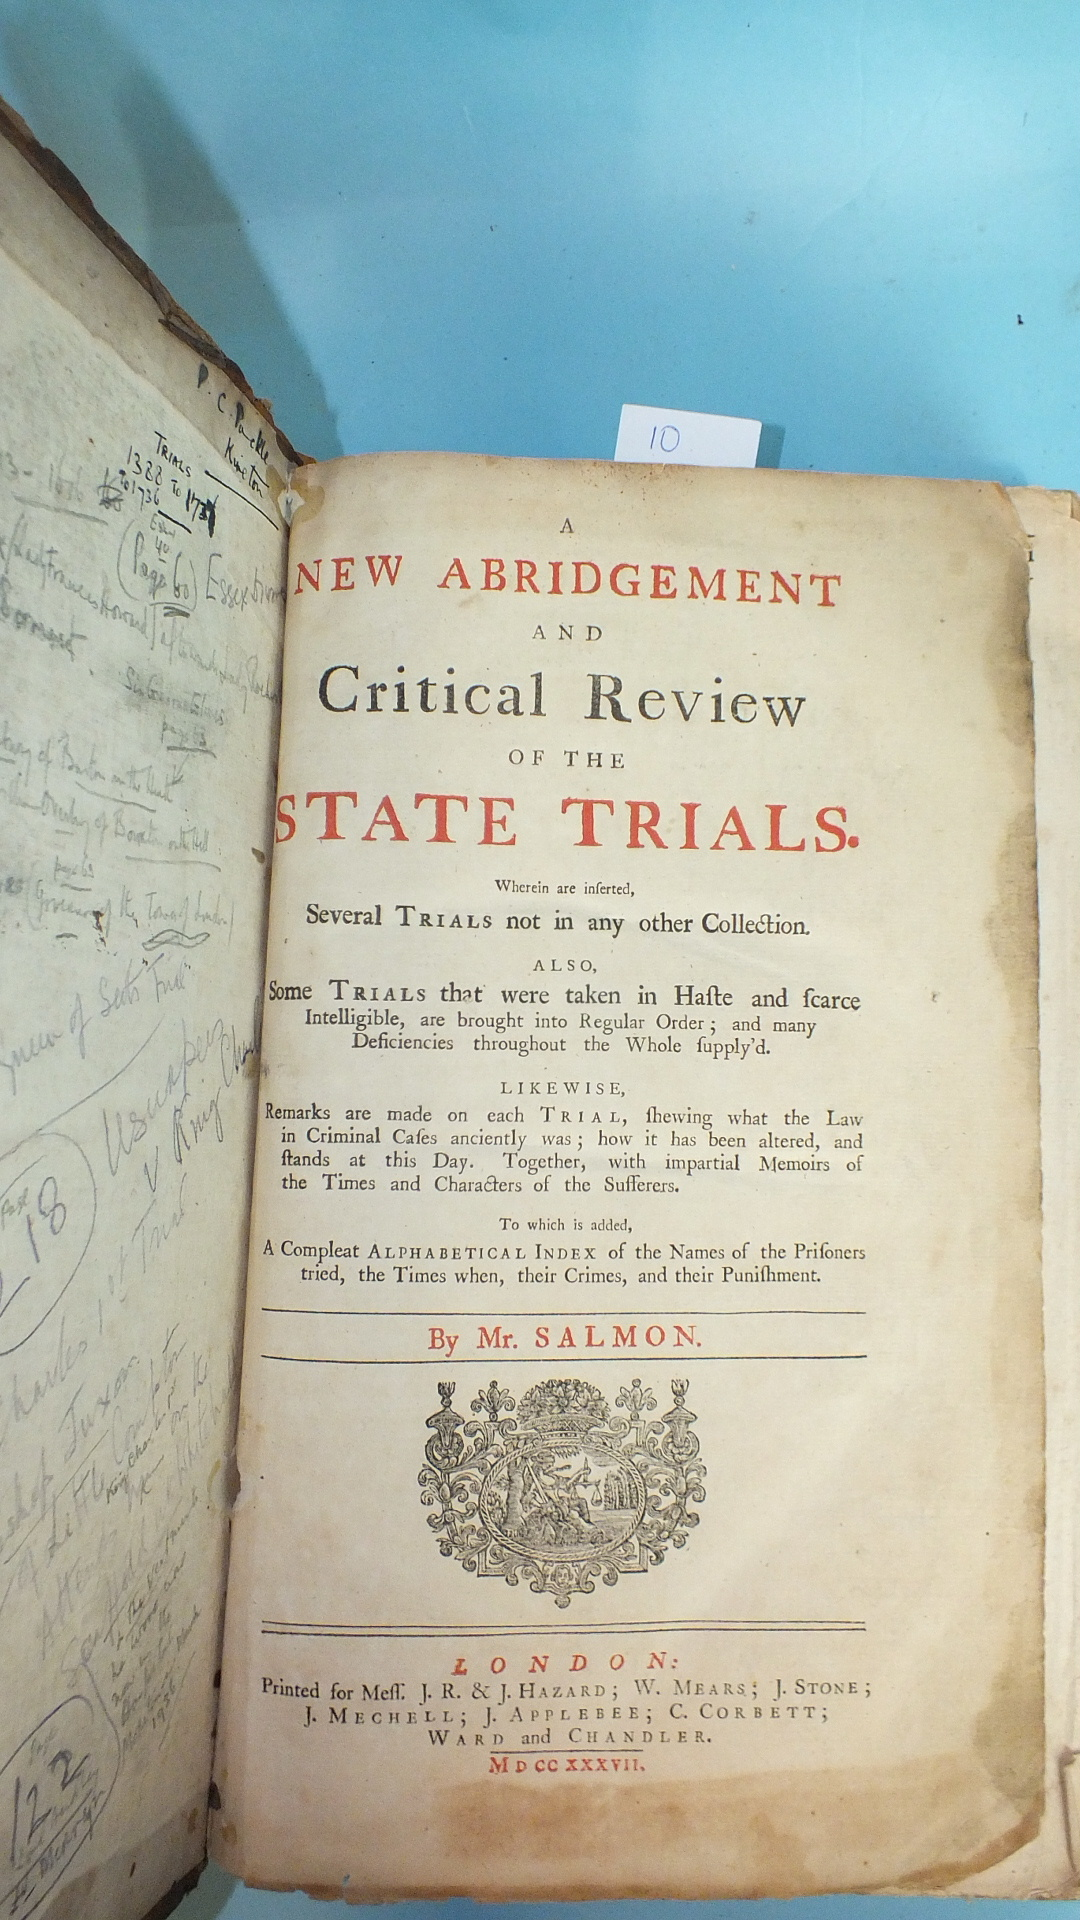 Salmon, (Thomas), A New Abridgement and Critical Review of the State Trials, vig tp, front bd, tp - Image 2 of 2